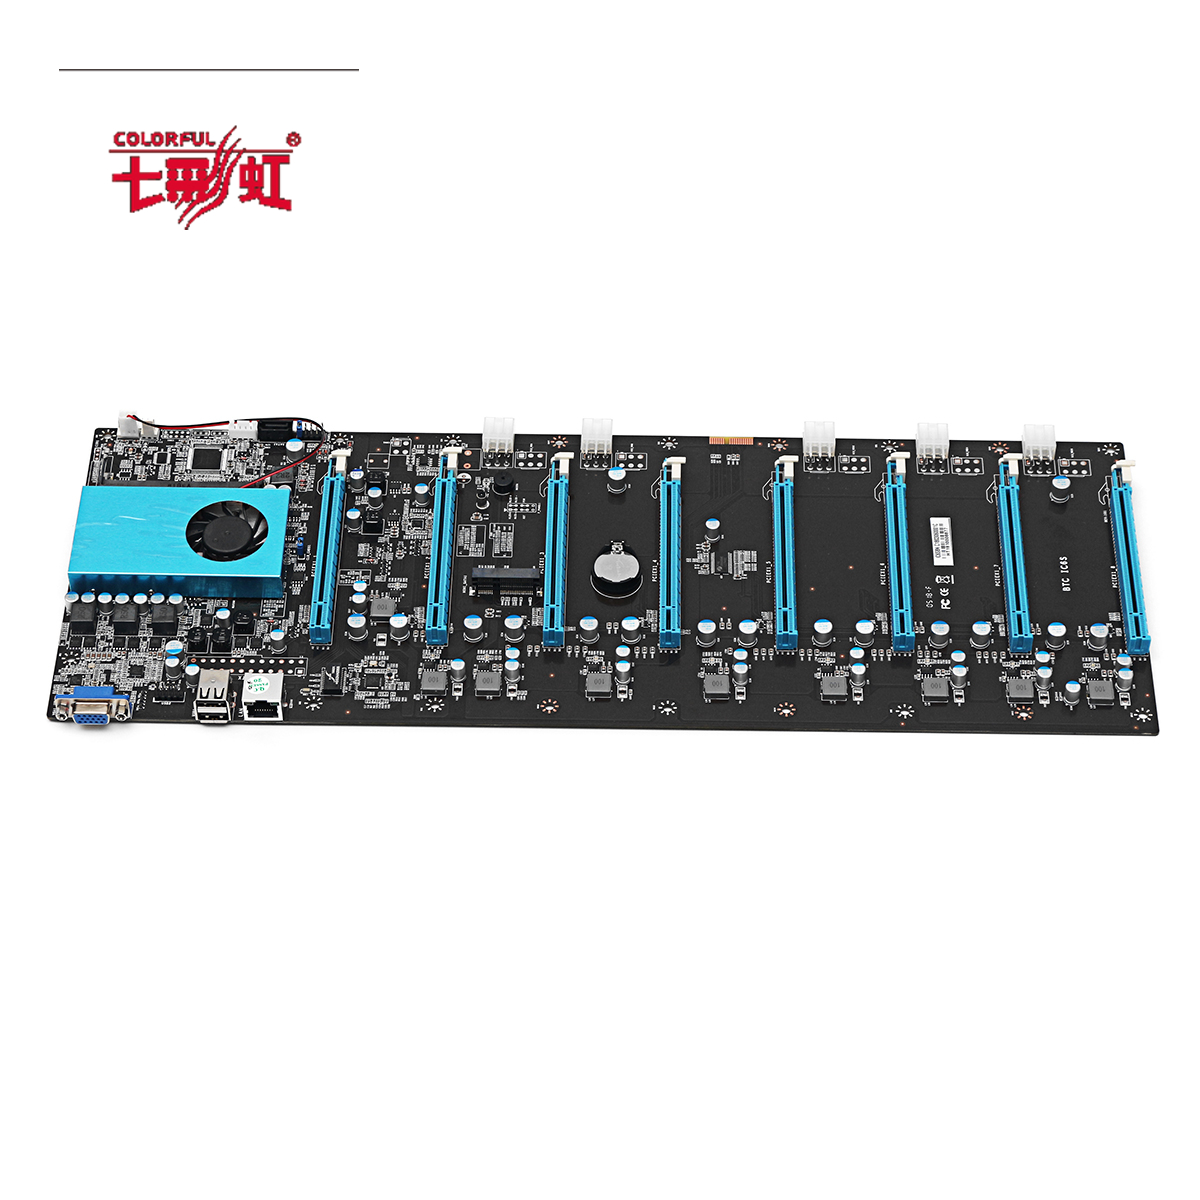 Colorful BTC IC6S Mining Motherboard Main Board for Computer CPU Intel With 8 PCI-E Slots l32e77 motherboard computer board as88 movement 40 37 k73a usa2xg xia pubing screen